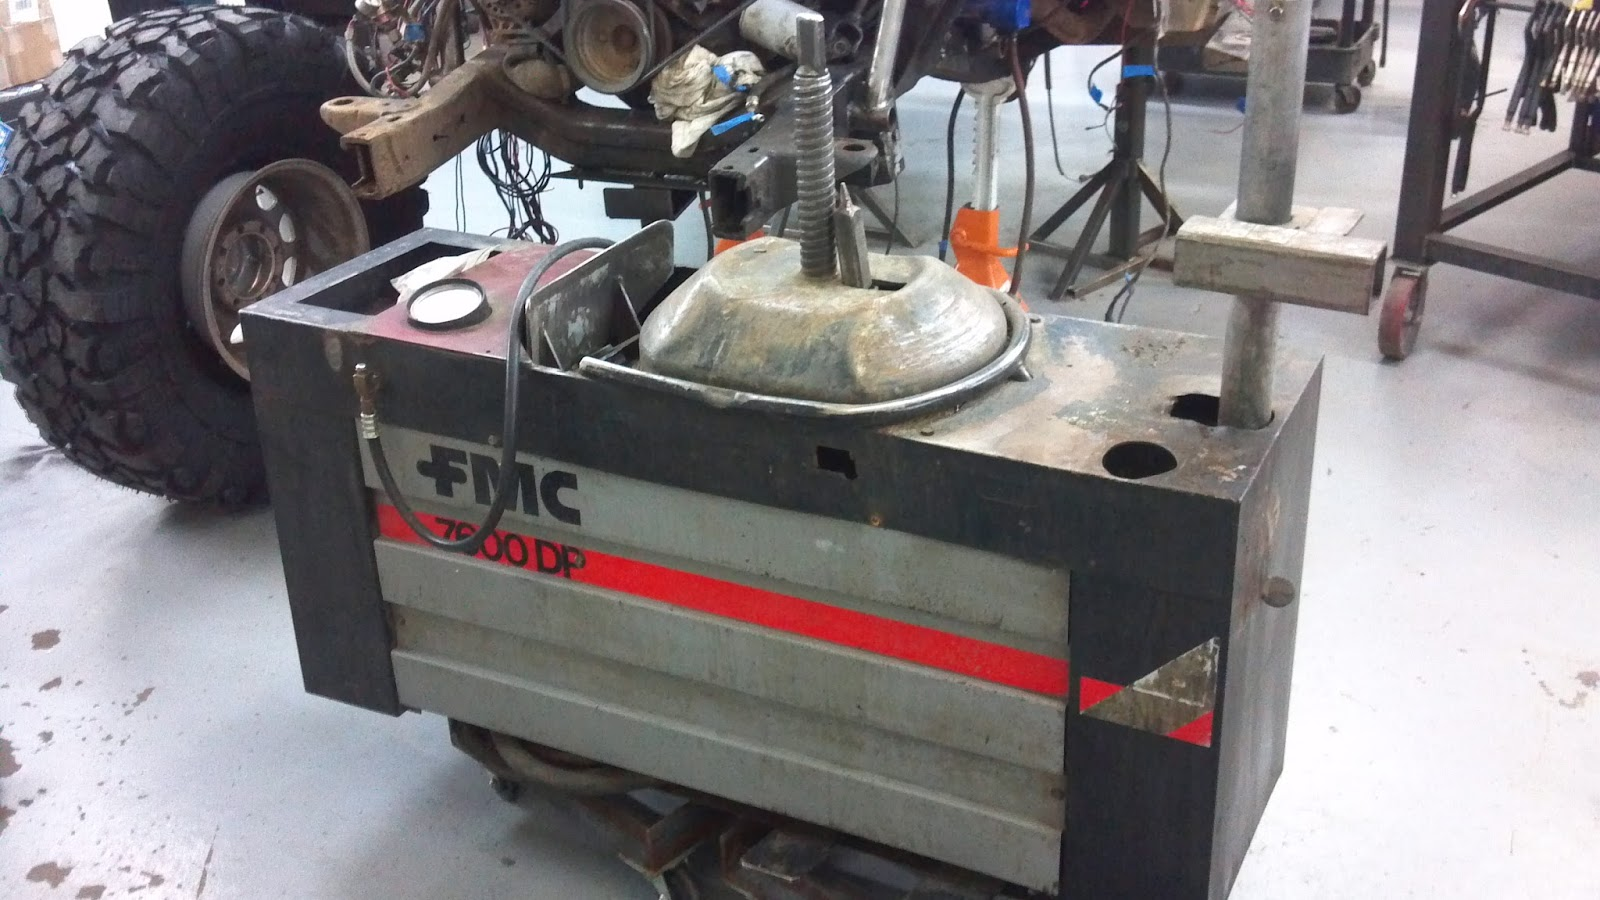 Brucker Brothers For Sale Used Fmc Snap On 7600 Dp Tire Changer